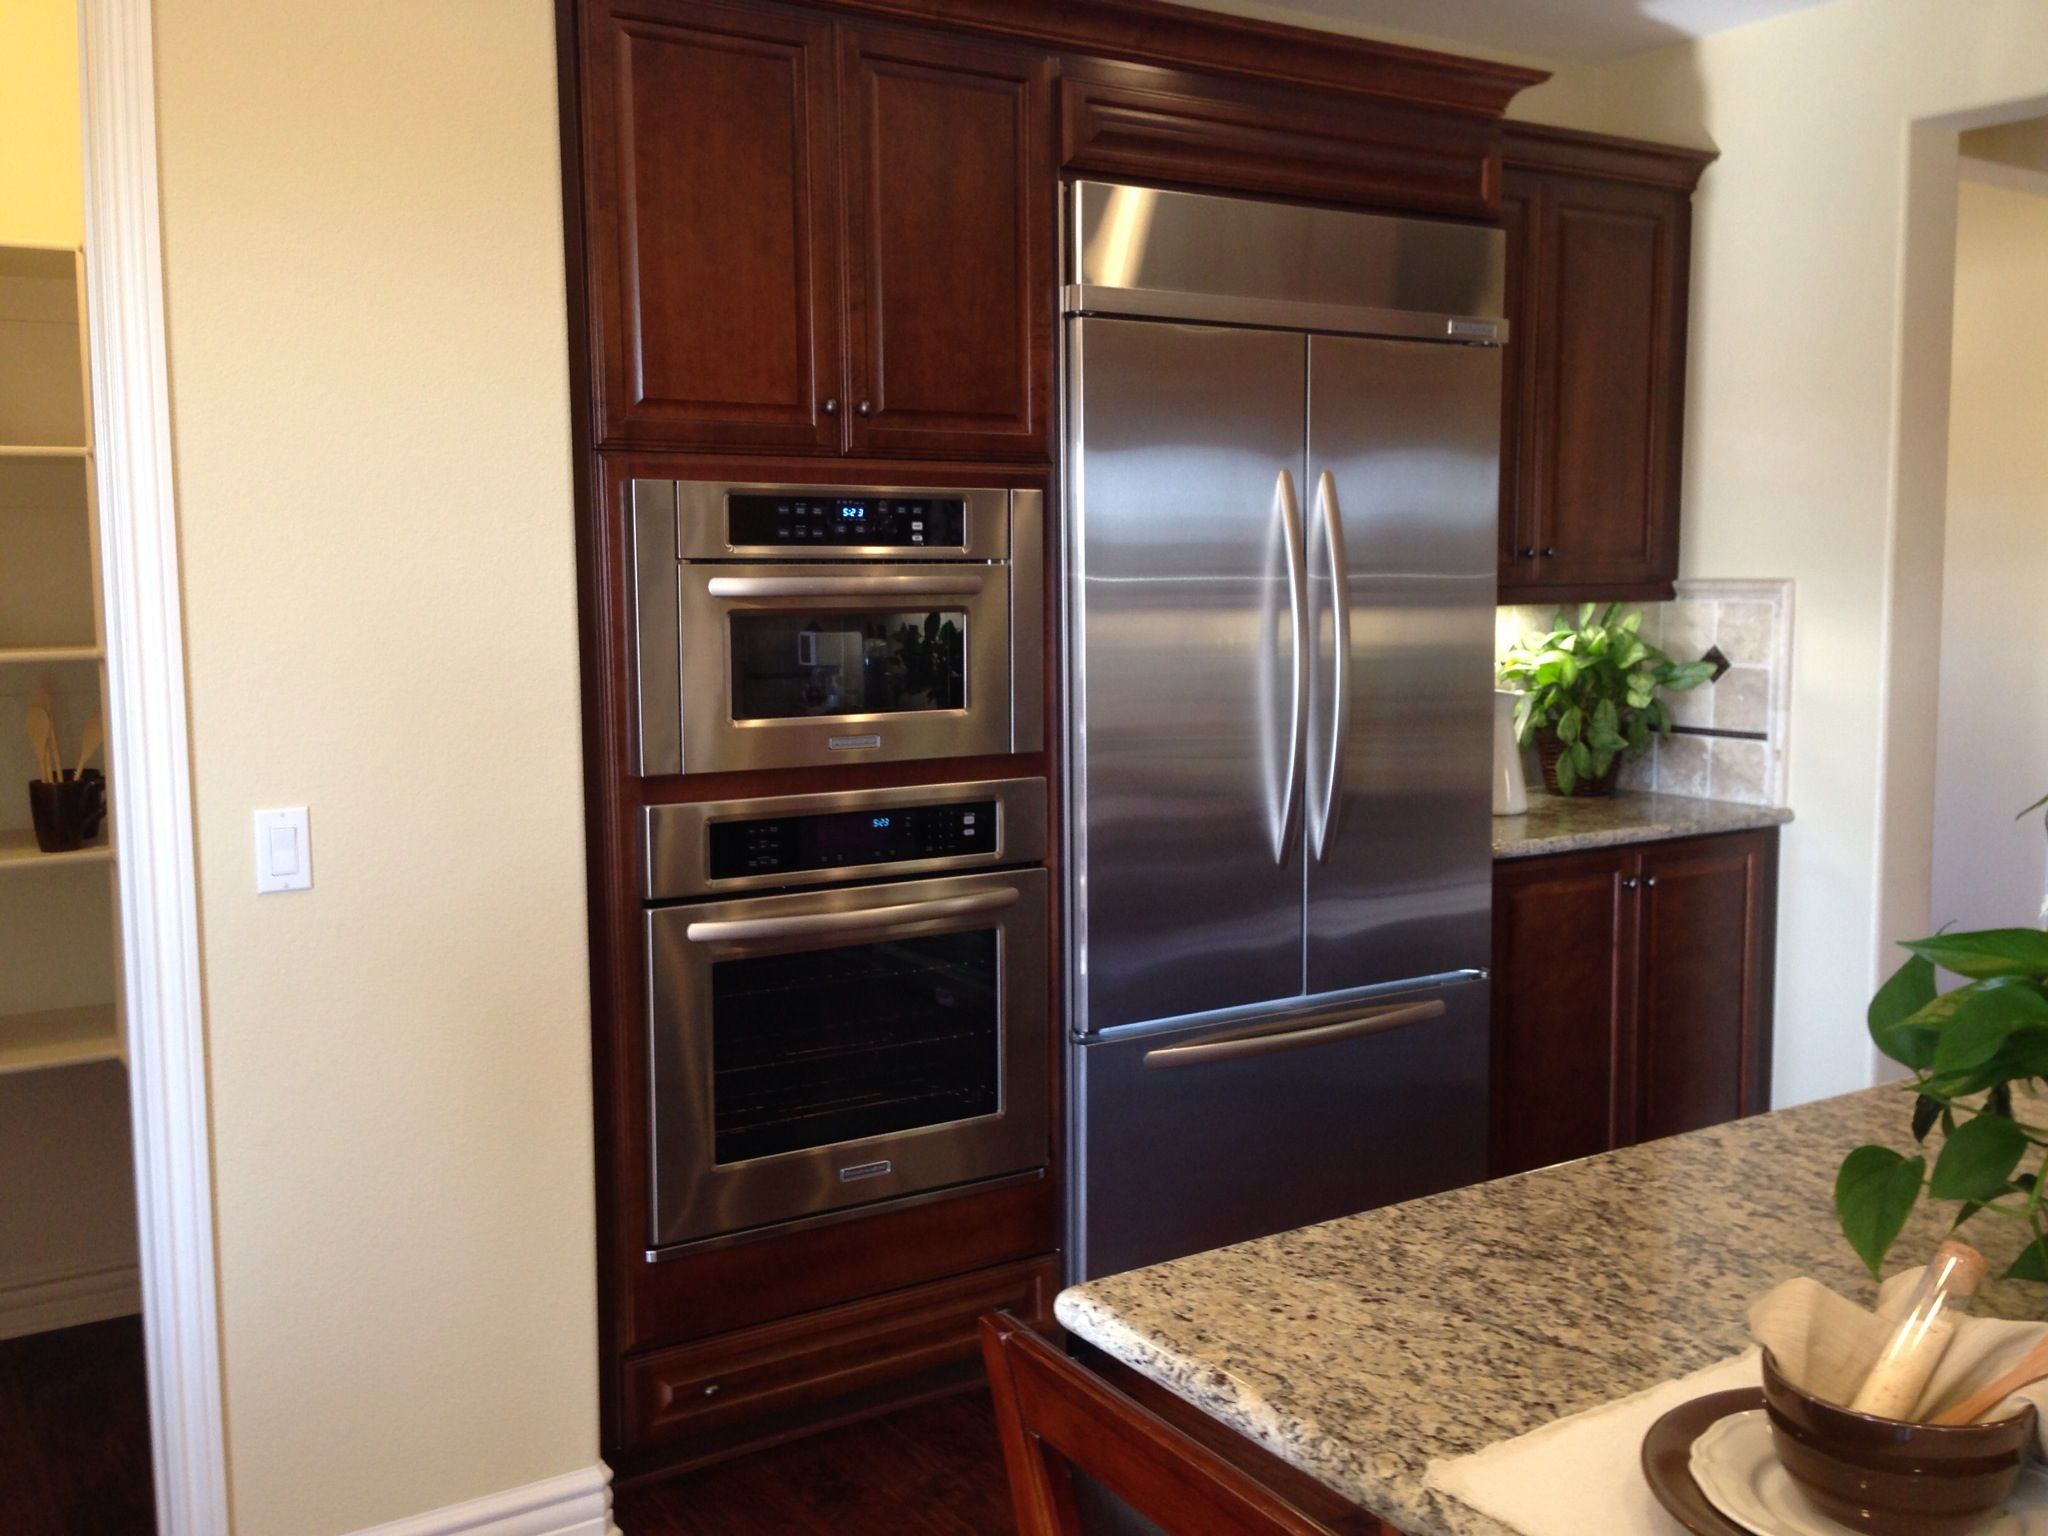 Microwave Placement Kitchen Pinterest